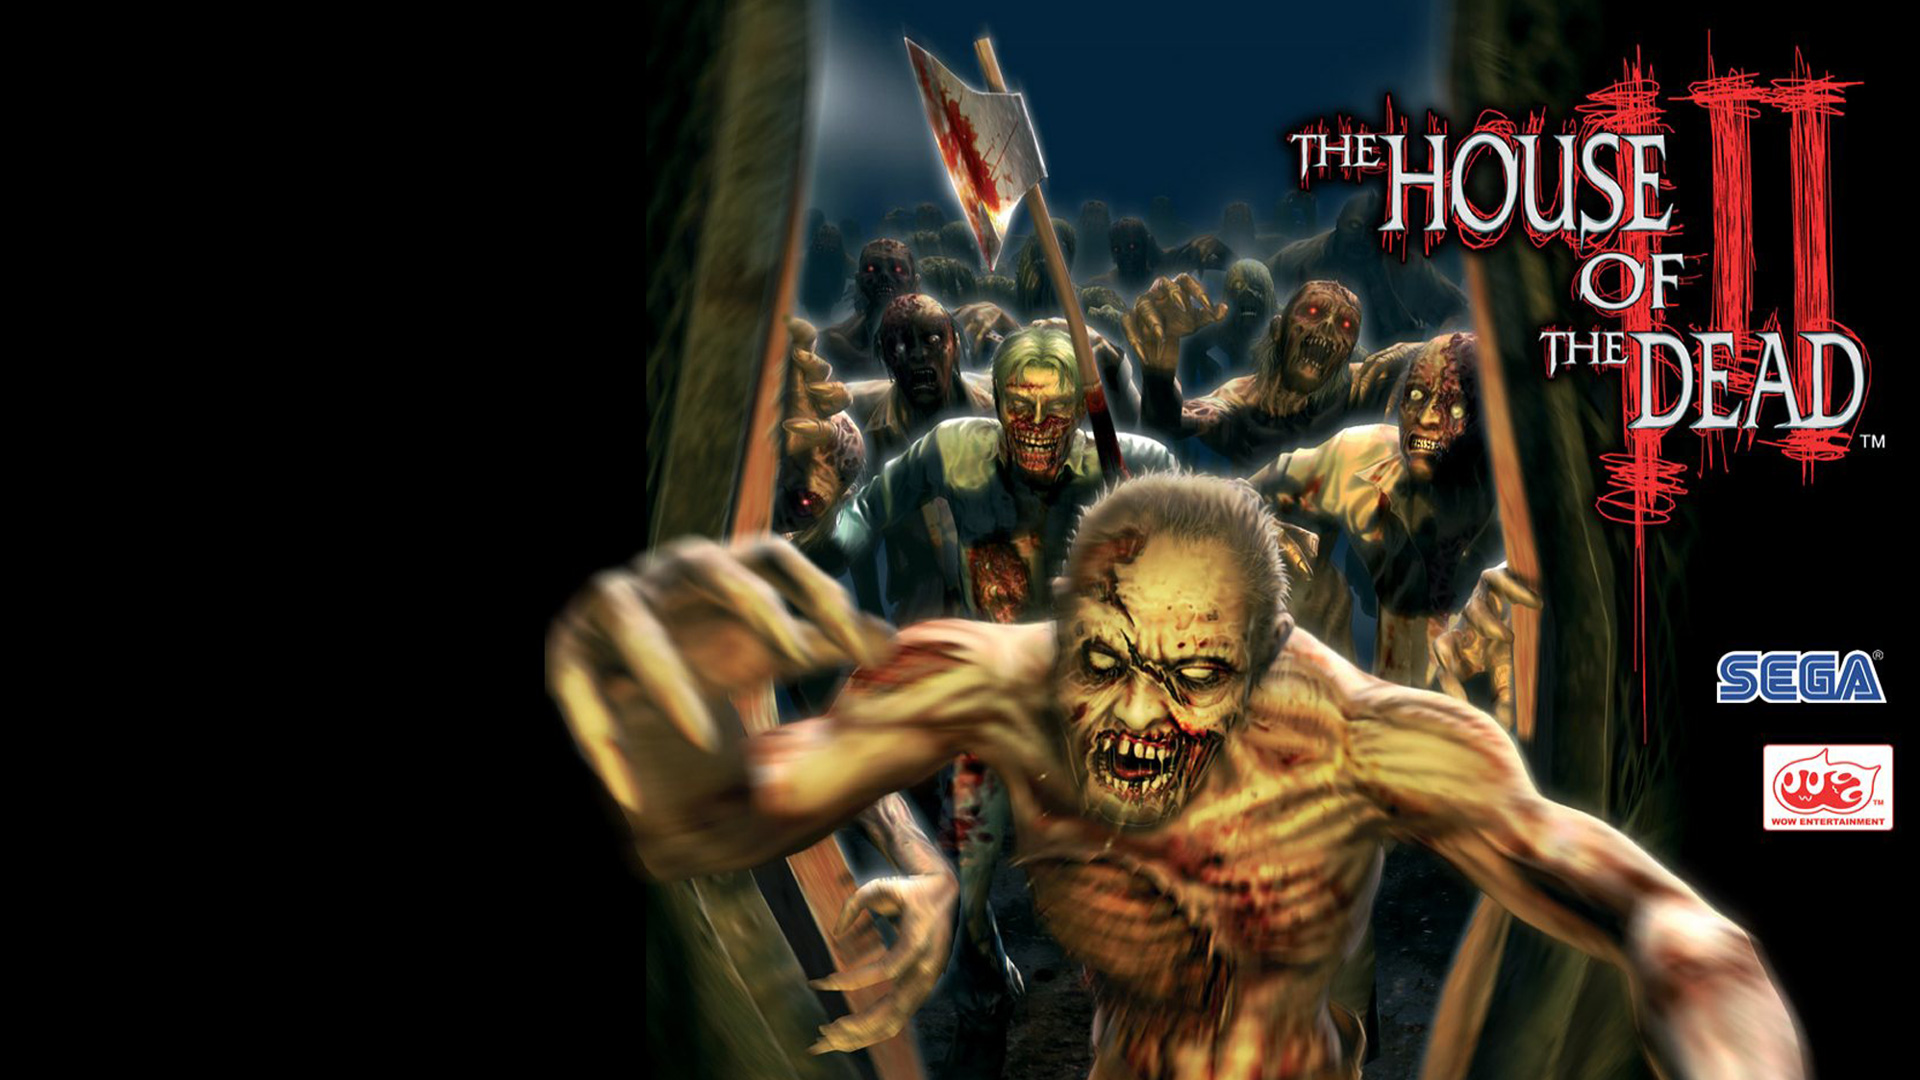 The House of the Dead 3 Wallpaper in 1920x1080